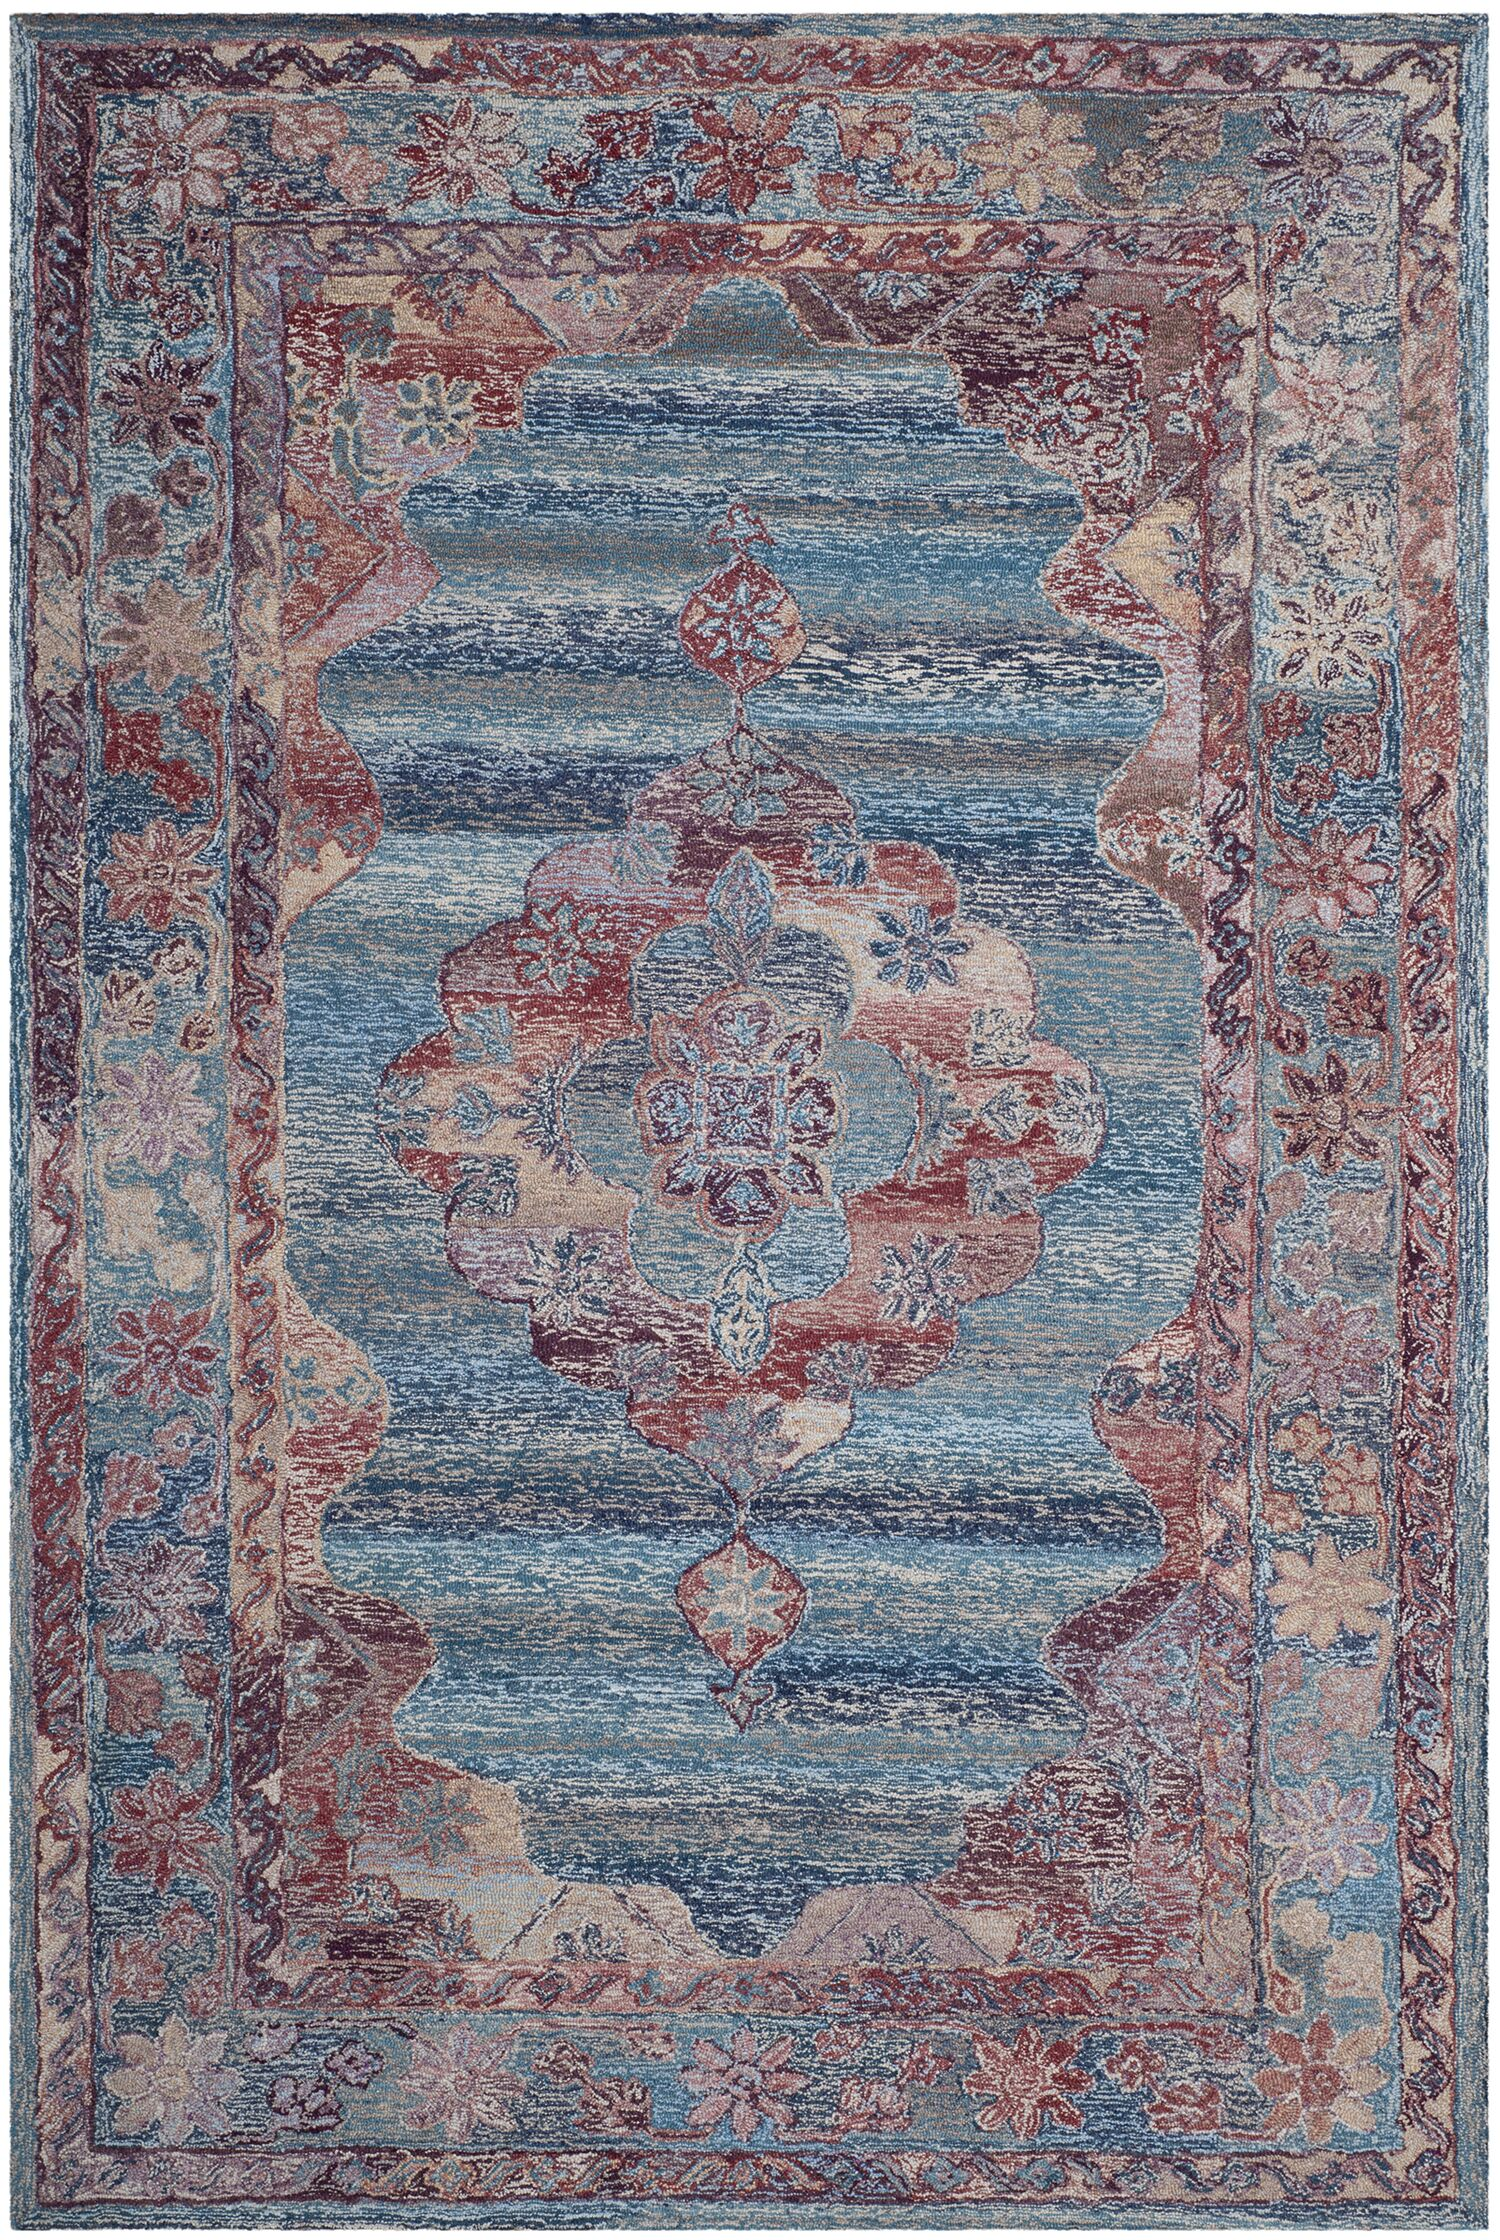 Emily Hand-Tufted Blue Area Rug Rug Size: Rectangle 6' x 9'